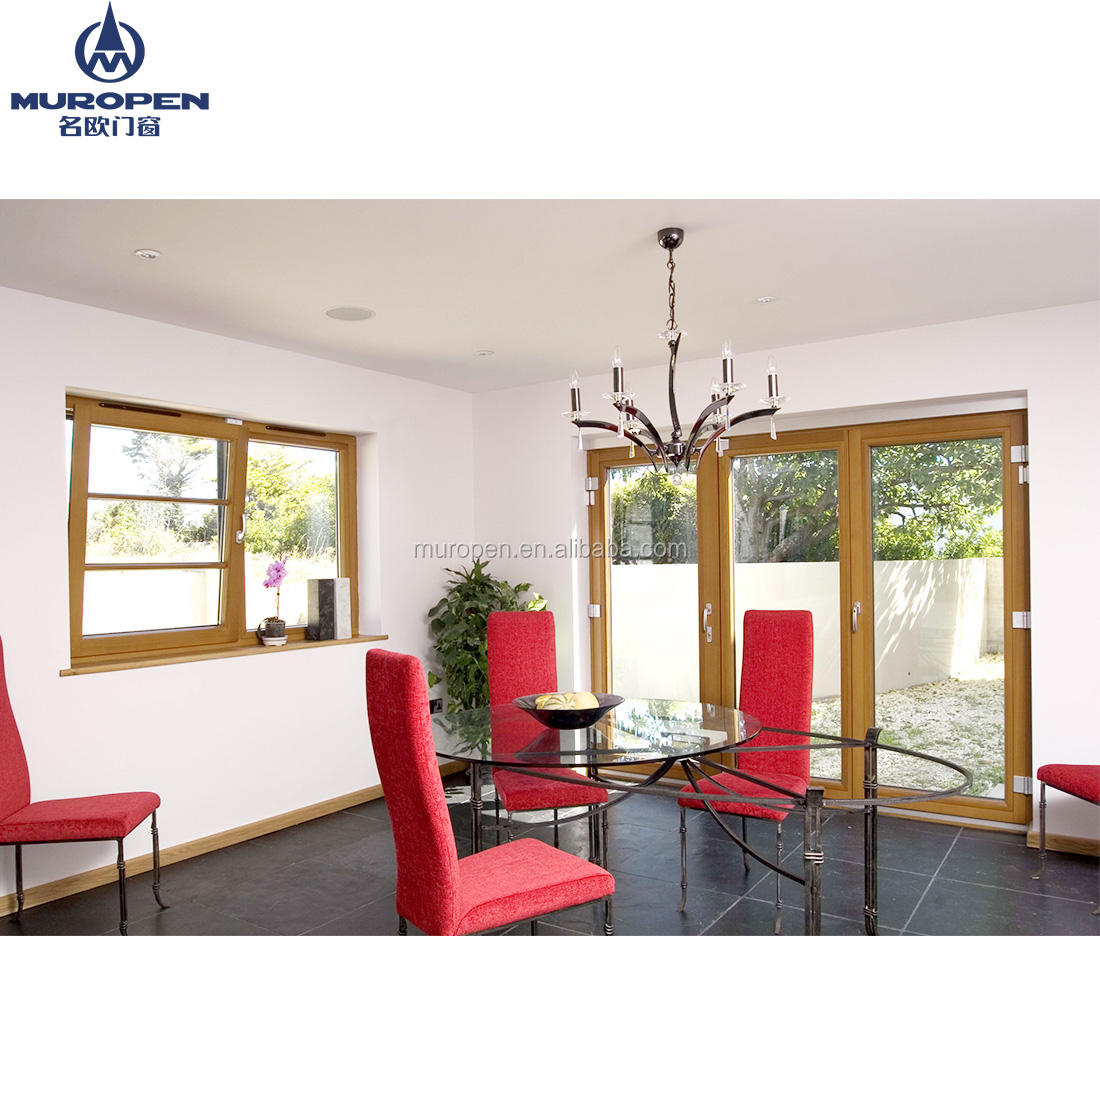 American aluminum awning windows with upgrade system